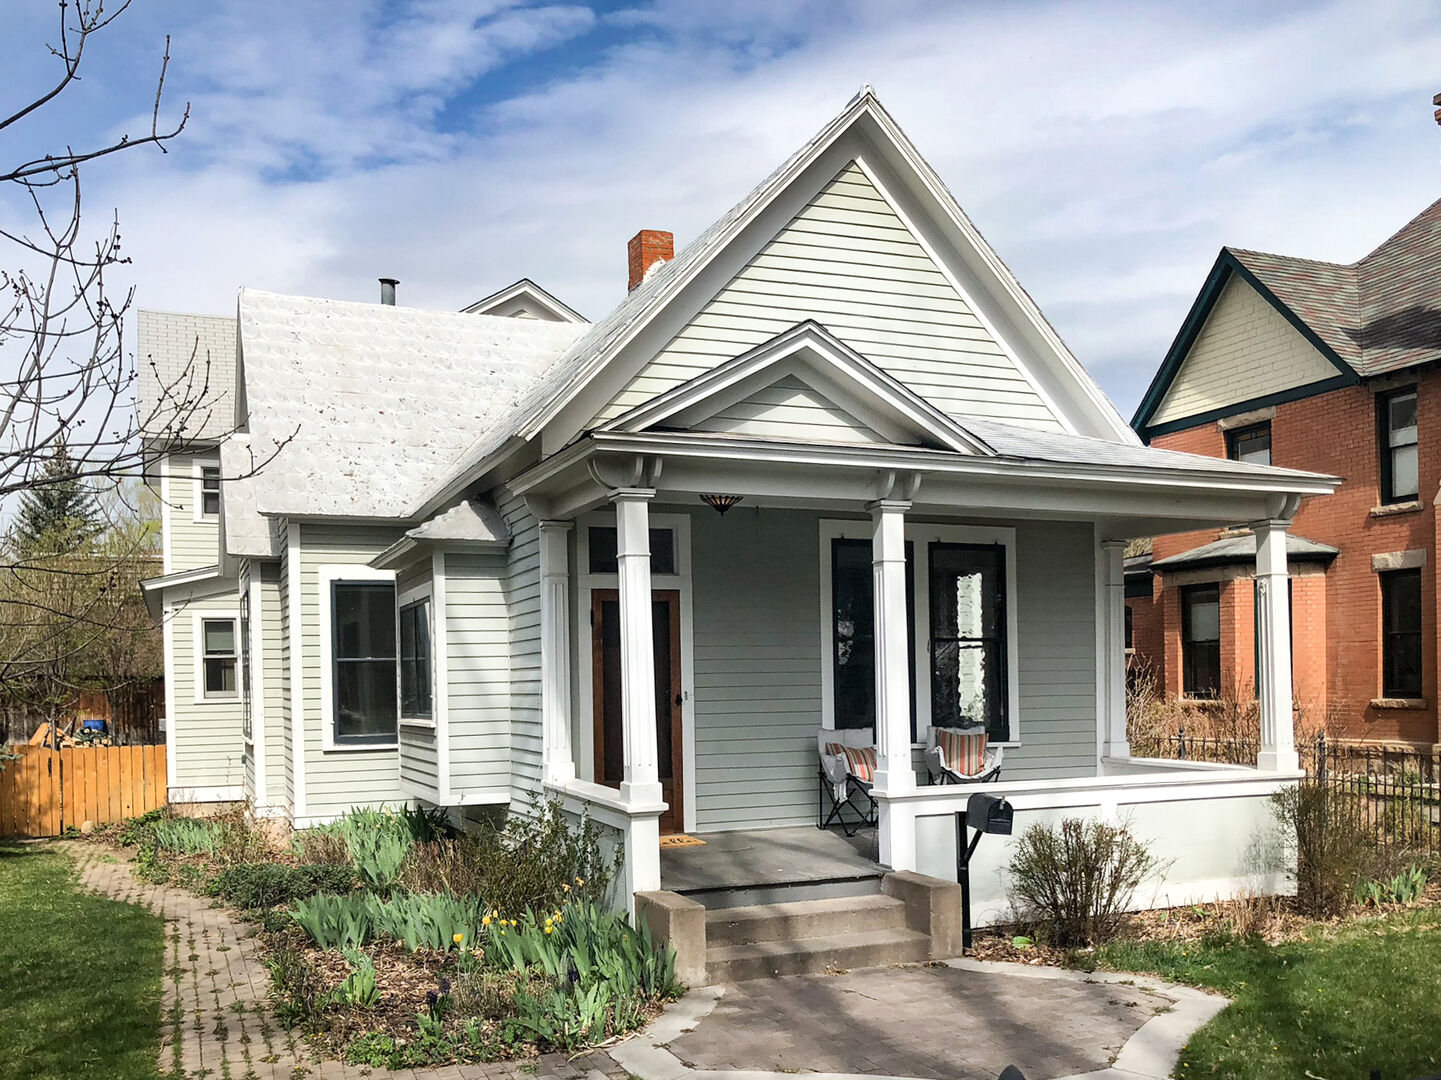 Historic Home located on Durango's beautiful 3rd Ave